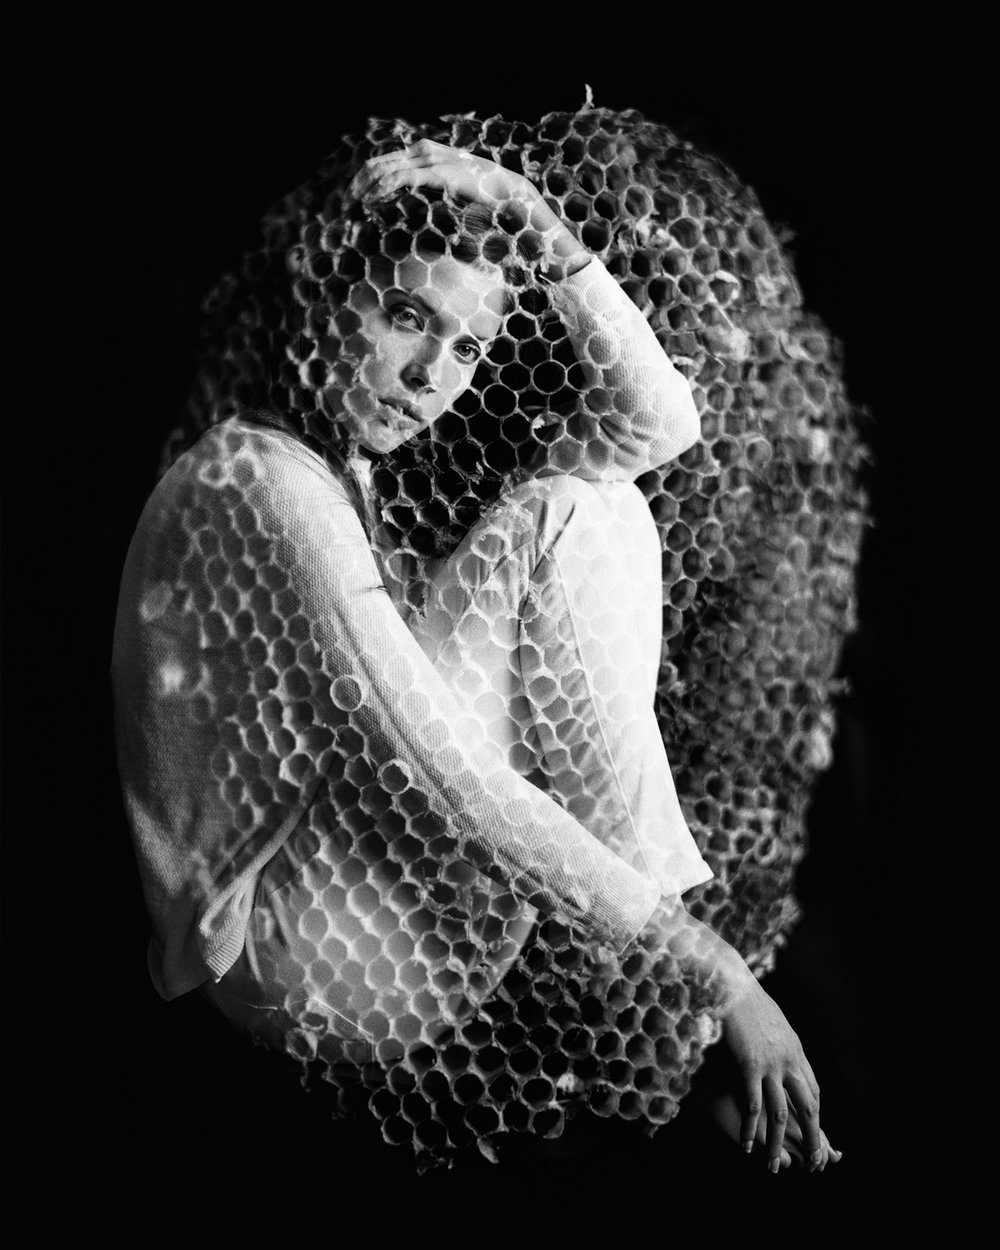 19_Jennifer_Wasp_Bee_Nest_Double Exposure_Mamiya_RB67_Ilford_HP5_Copyright_Taylor_Noel_Photography.jpg